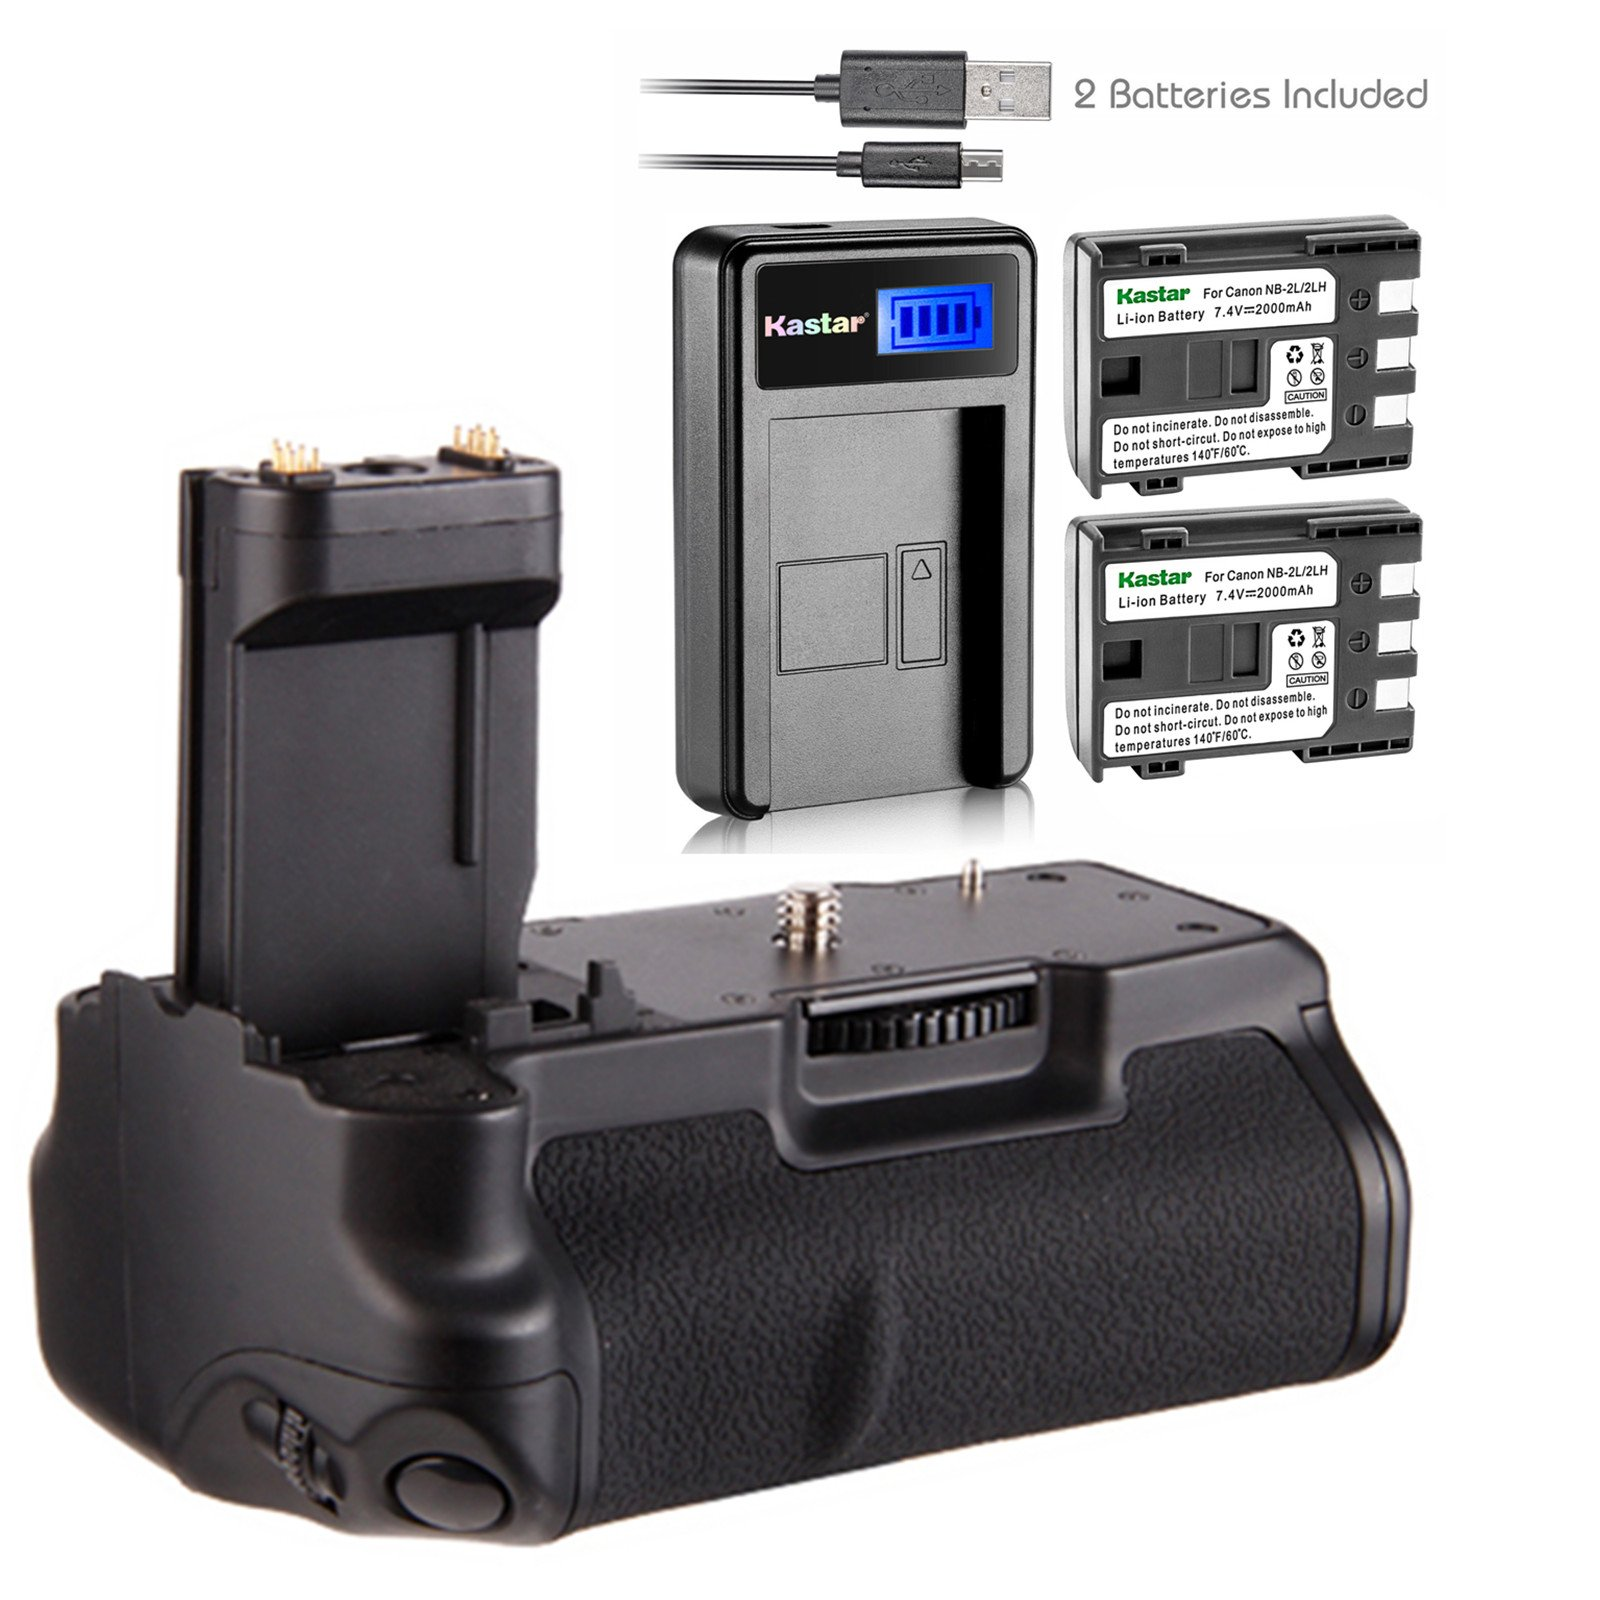 Kastar Pro Multi-Power Vertical Battery Grip BG-E3 + 2 x Replacement Batteries + LCD USB Charger for Canon EOS 350D, 400D, Rebel XT, Xti Digital Camera and Canon NB-2L, NB-2LH Battery